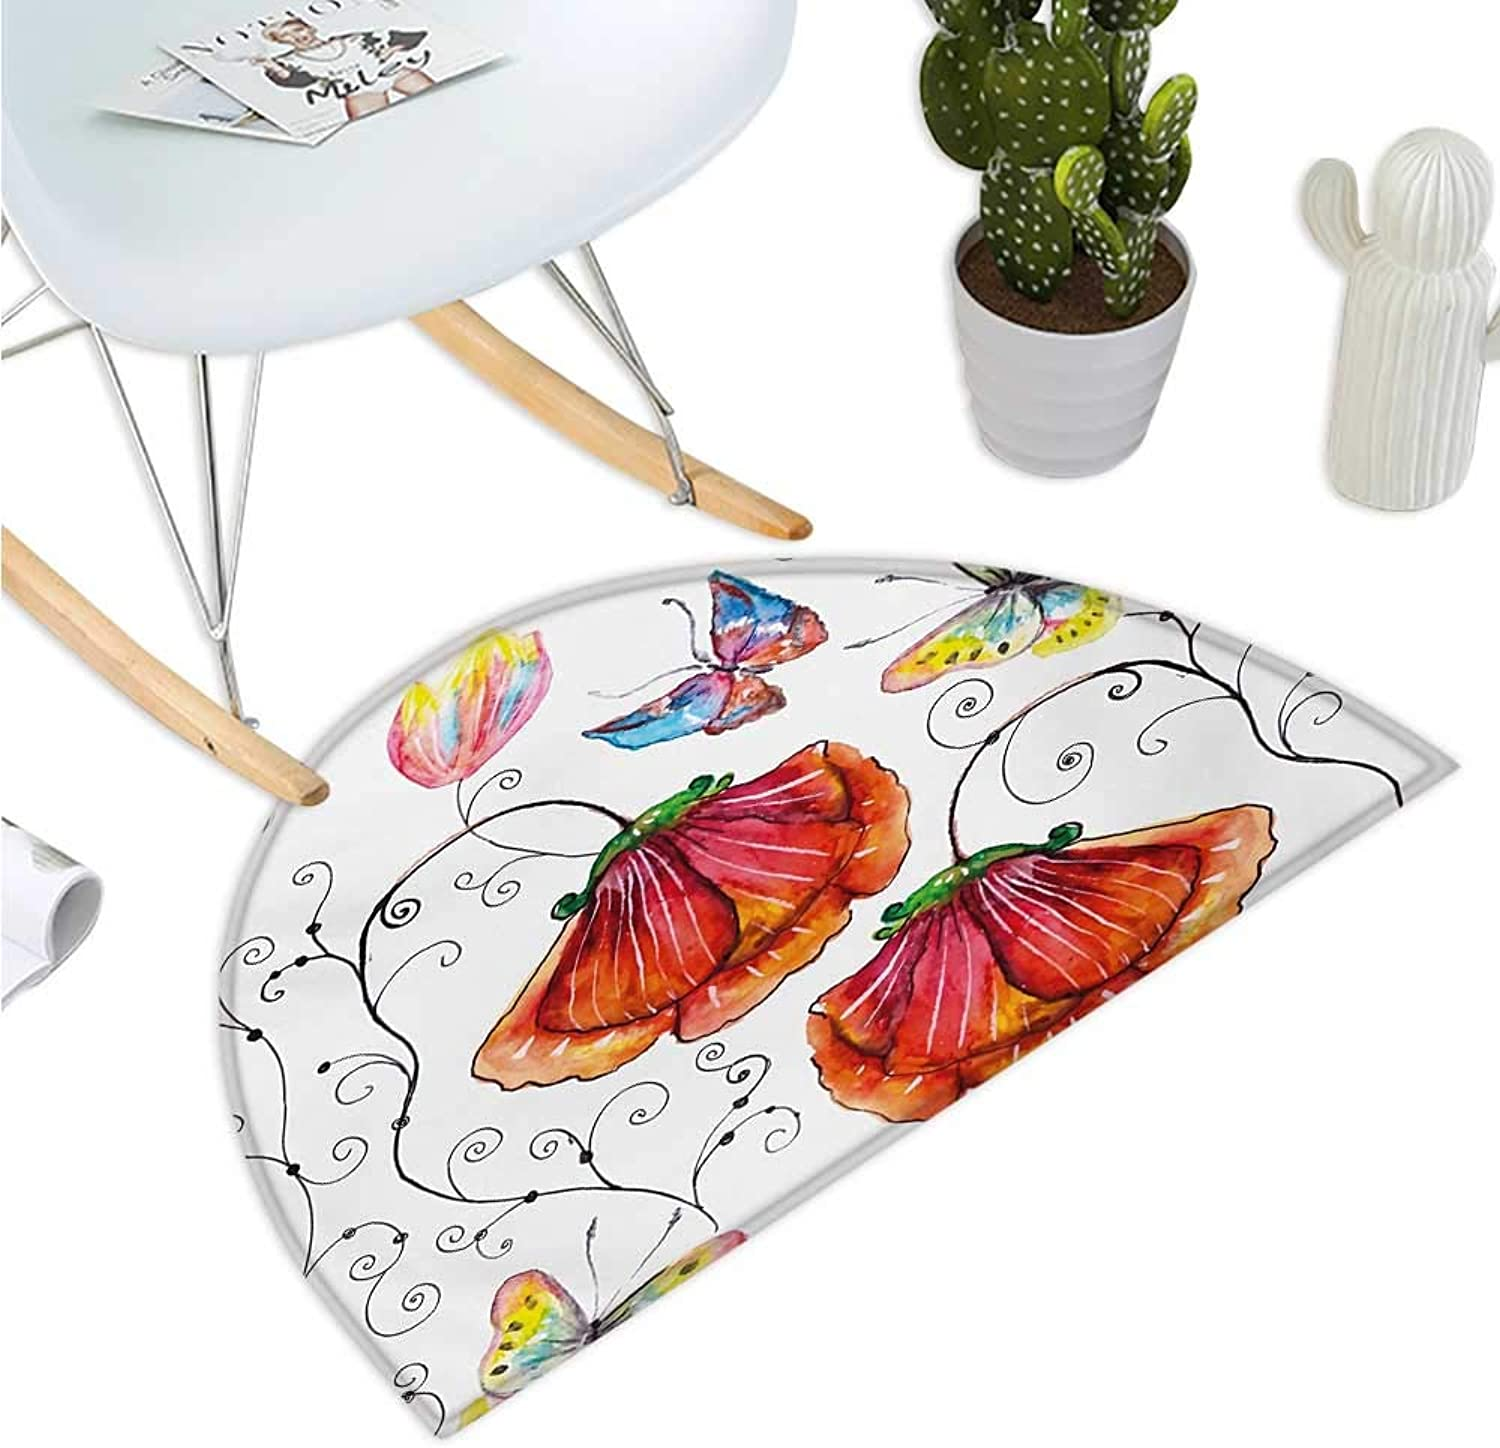 Nature Semicircle Doormat Flowers with Swirled Branches Butterflies in Watercolors Artistic Botanical Summer Halfmoon doormats H 39.3  xD 59  Multicolor